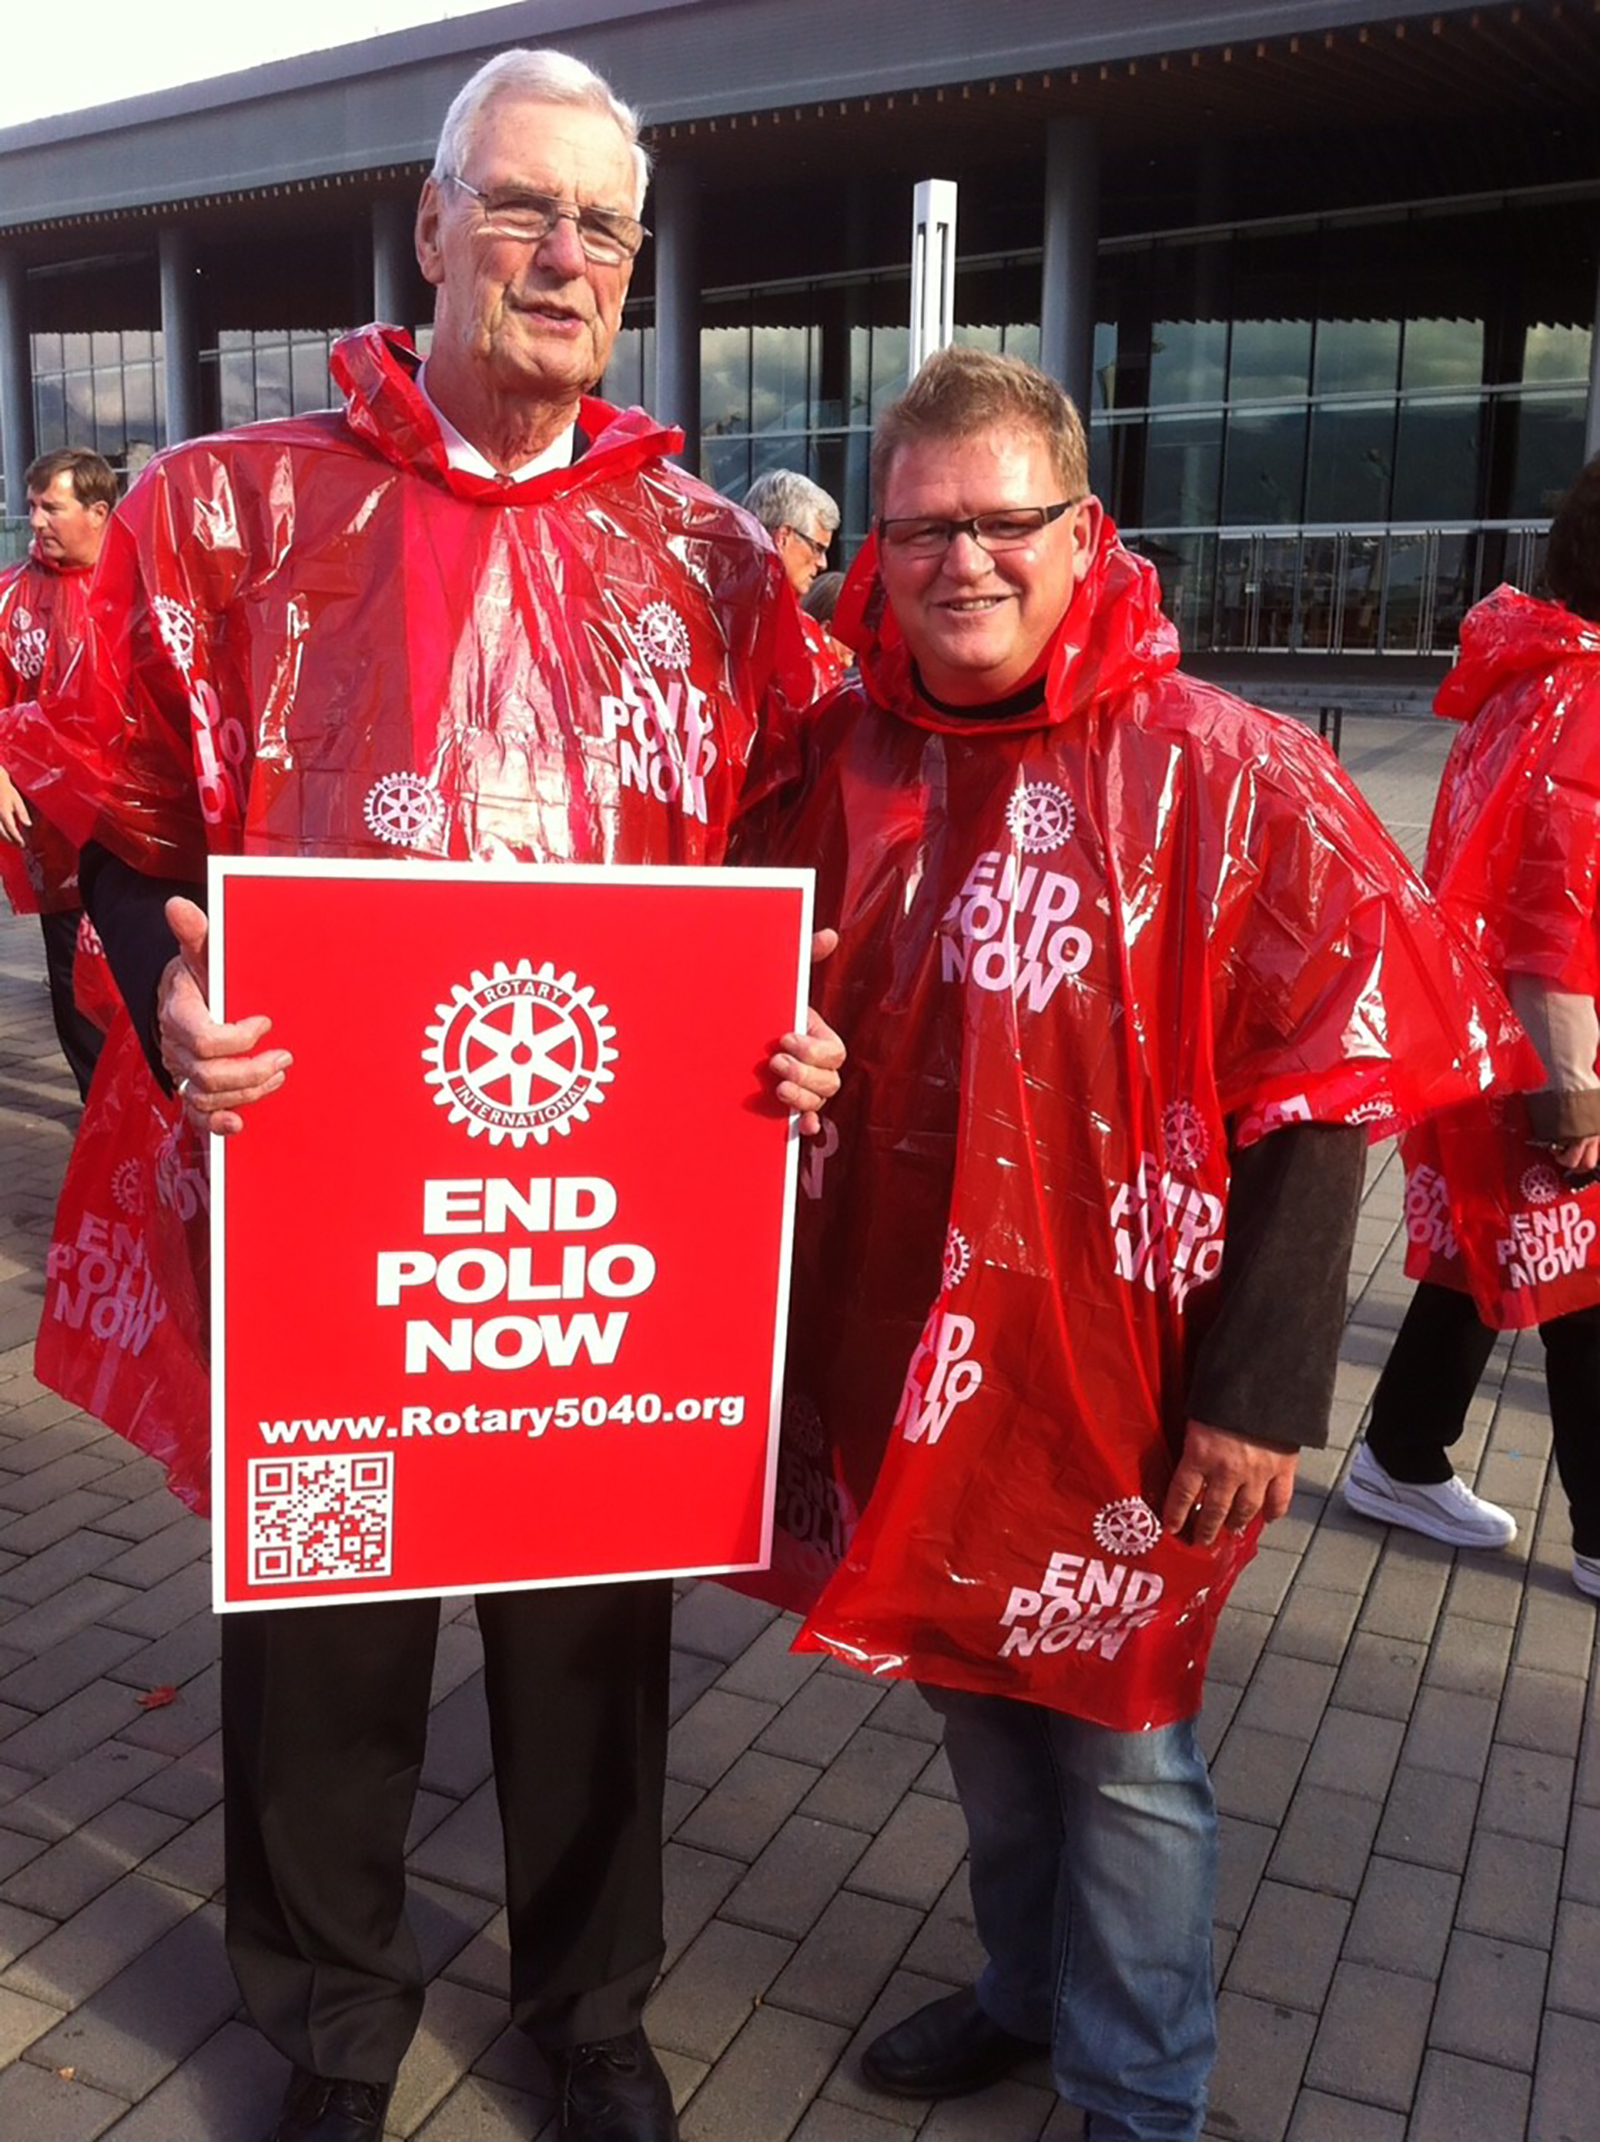 Bob Scott and Michael Kinsey don red ponchos to raise awareness on World Polio Day.